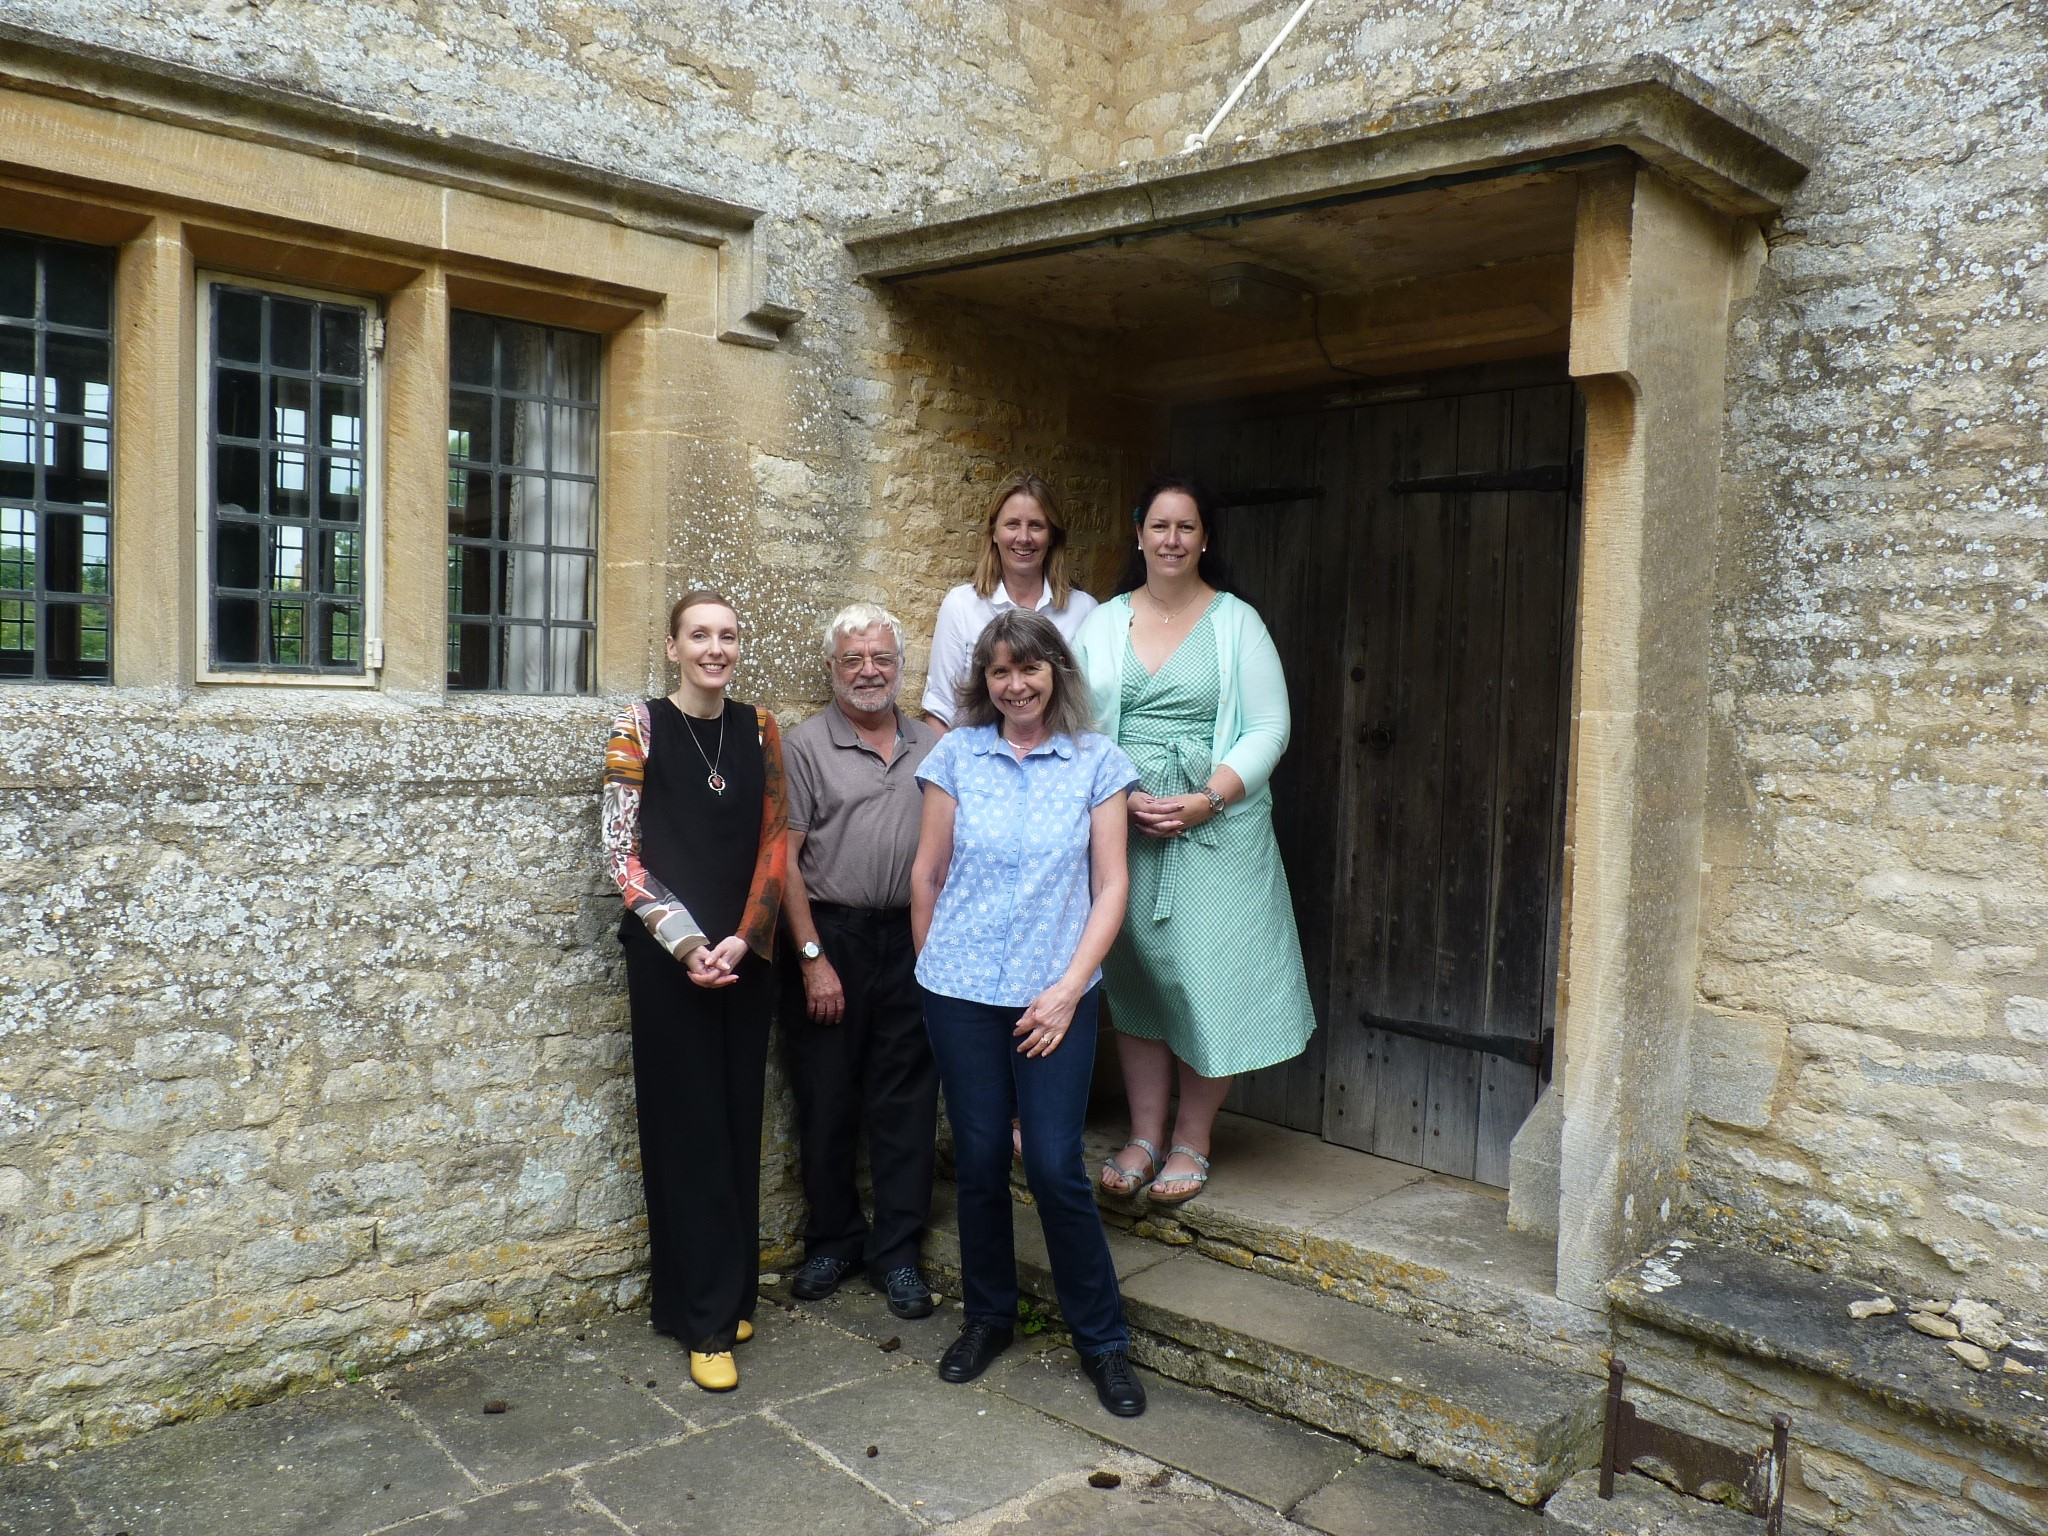 Front: L-R: Kathy Haslam, Jake Nelson and Laura Roberts. Rear: Anne Stephens (L) and Sarah Richards.